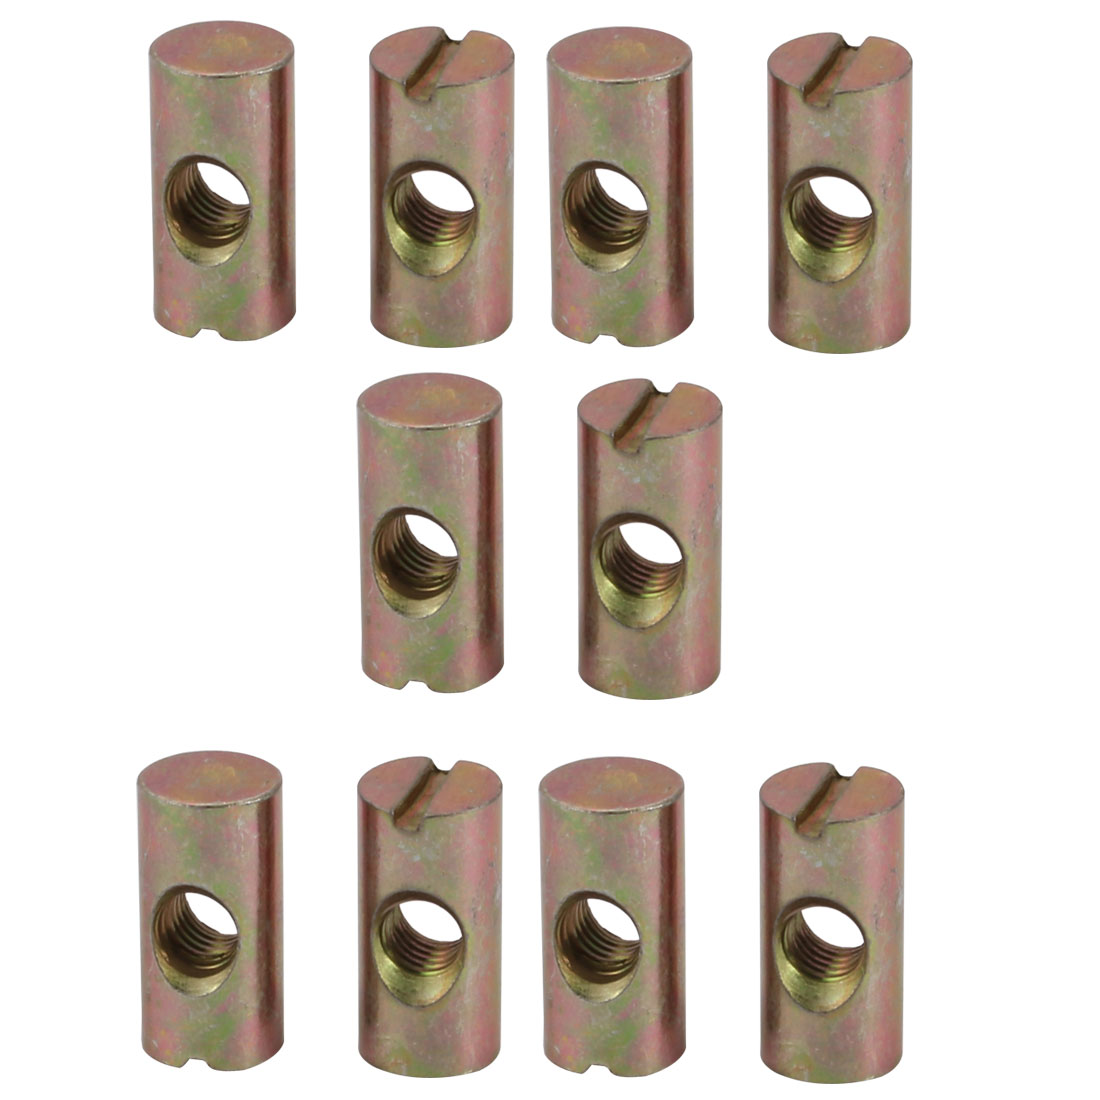 10pcs M6 Thread 20mm Height Zinc Plated Iron Slotted Drive Cross Dowel Nuts - image 3 of 3